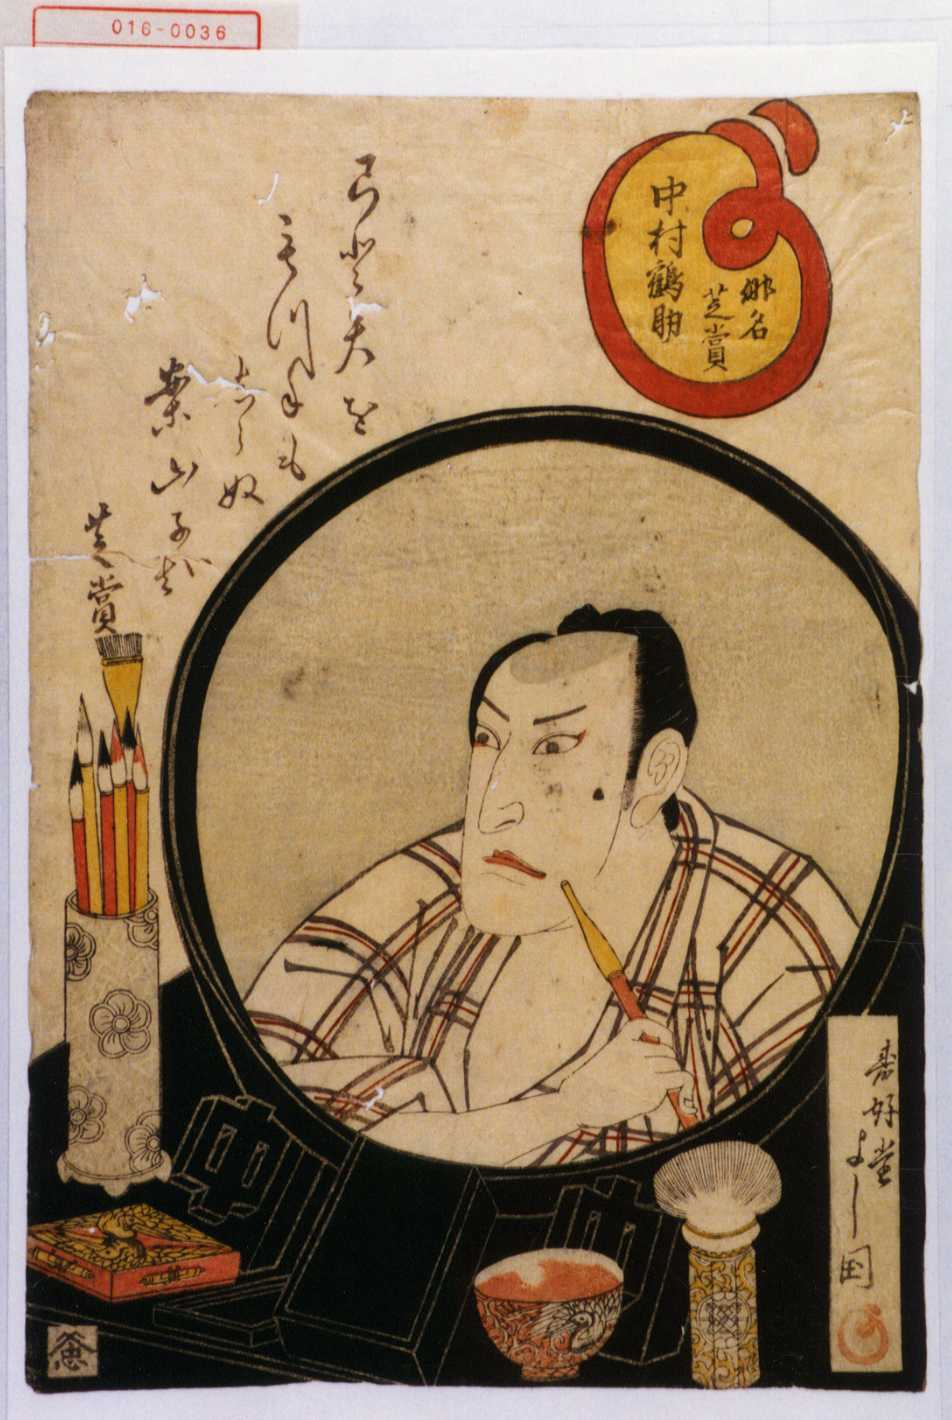 よし国: 「中村鶴助 俳名芝賞」 - Waseda University Theatre Museum - Ukiyo-e Search